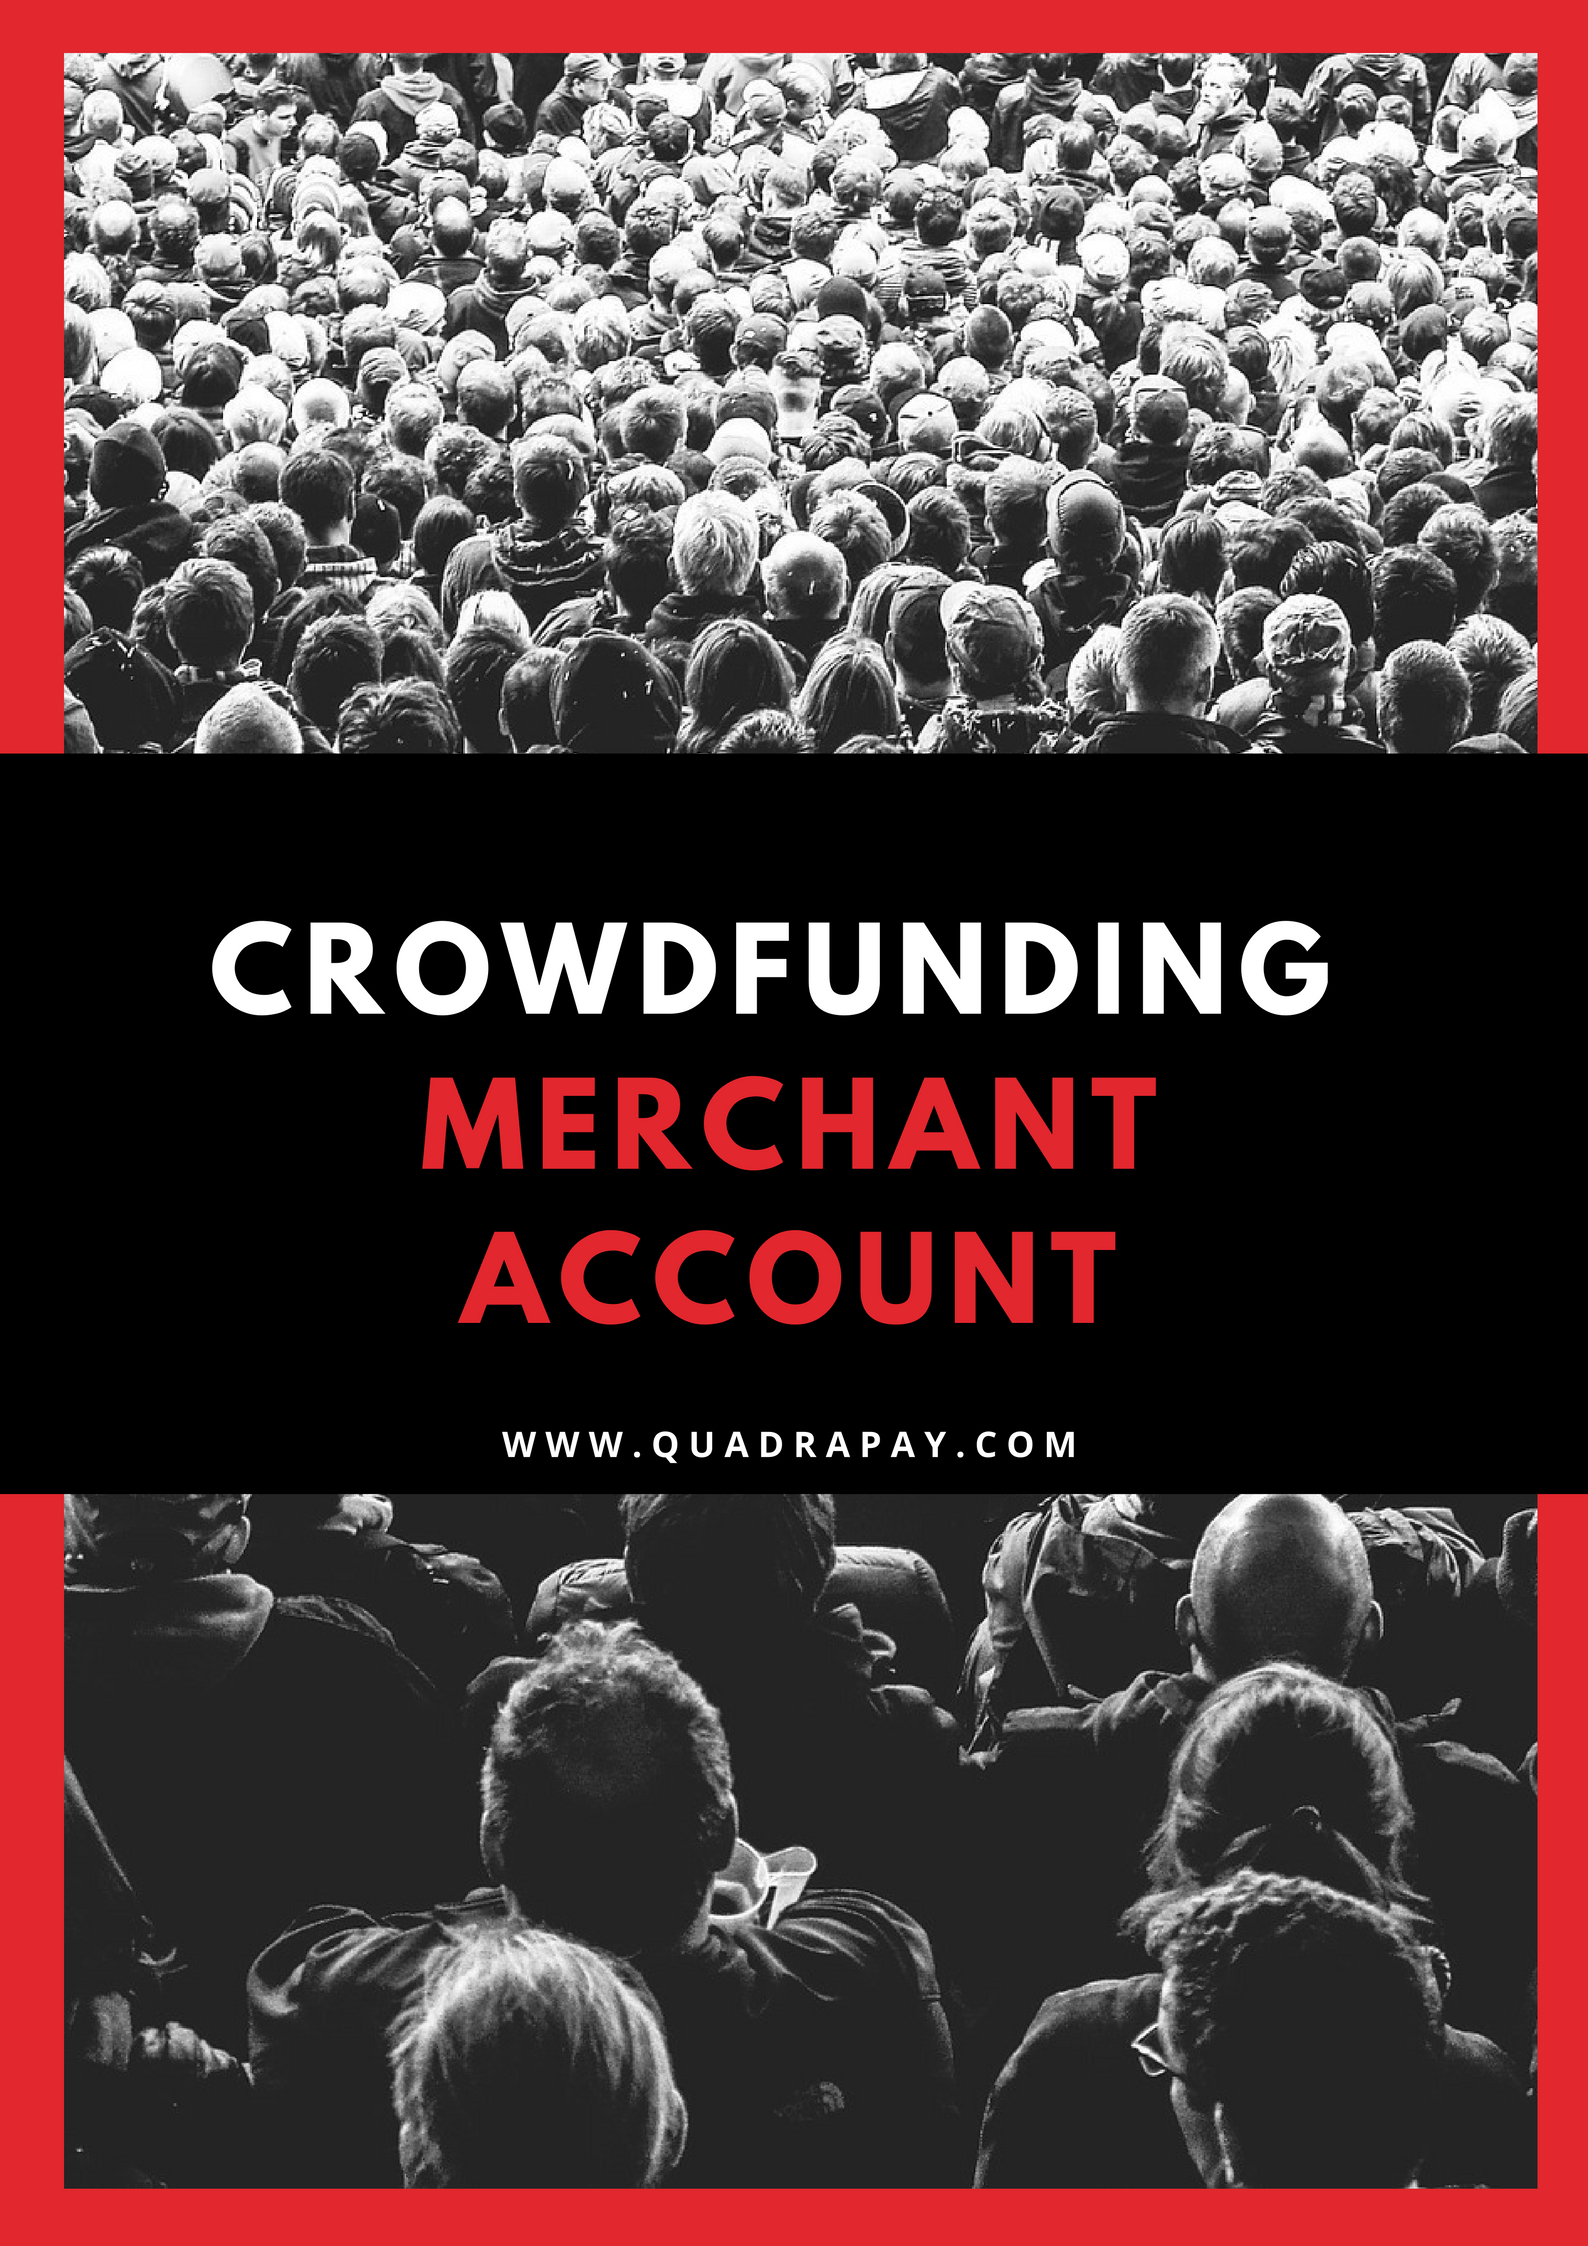 Crowdfunding Merchant Account